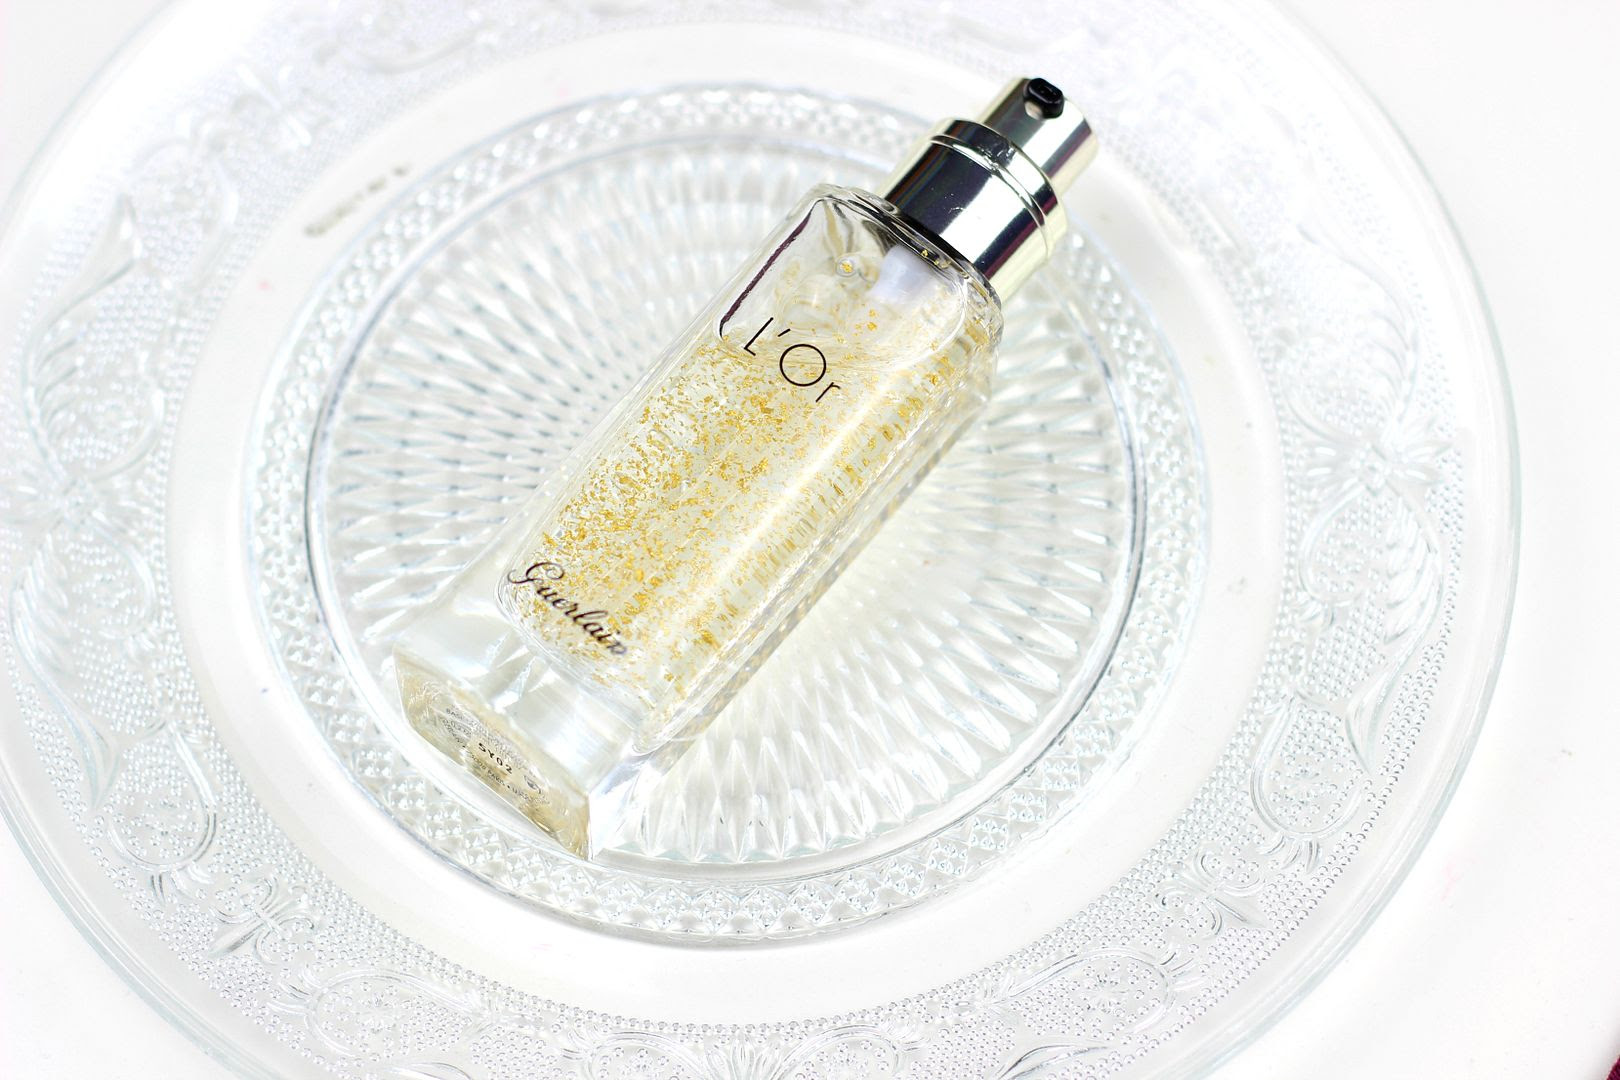 Review of the Guerlain L'or radiance concentrate